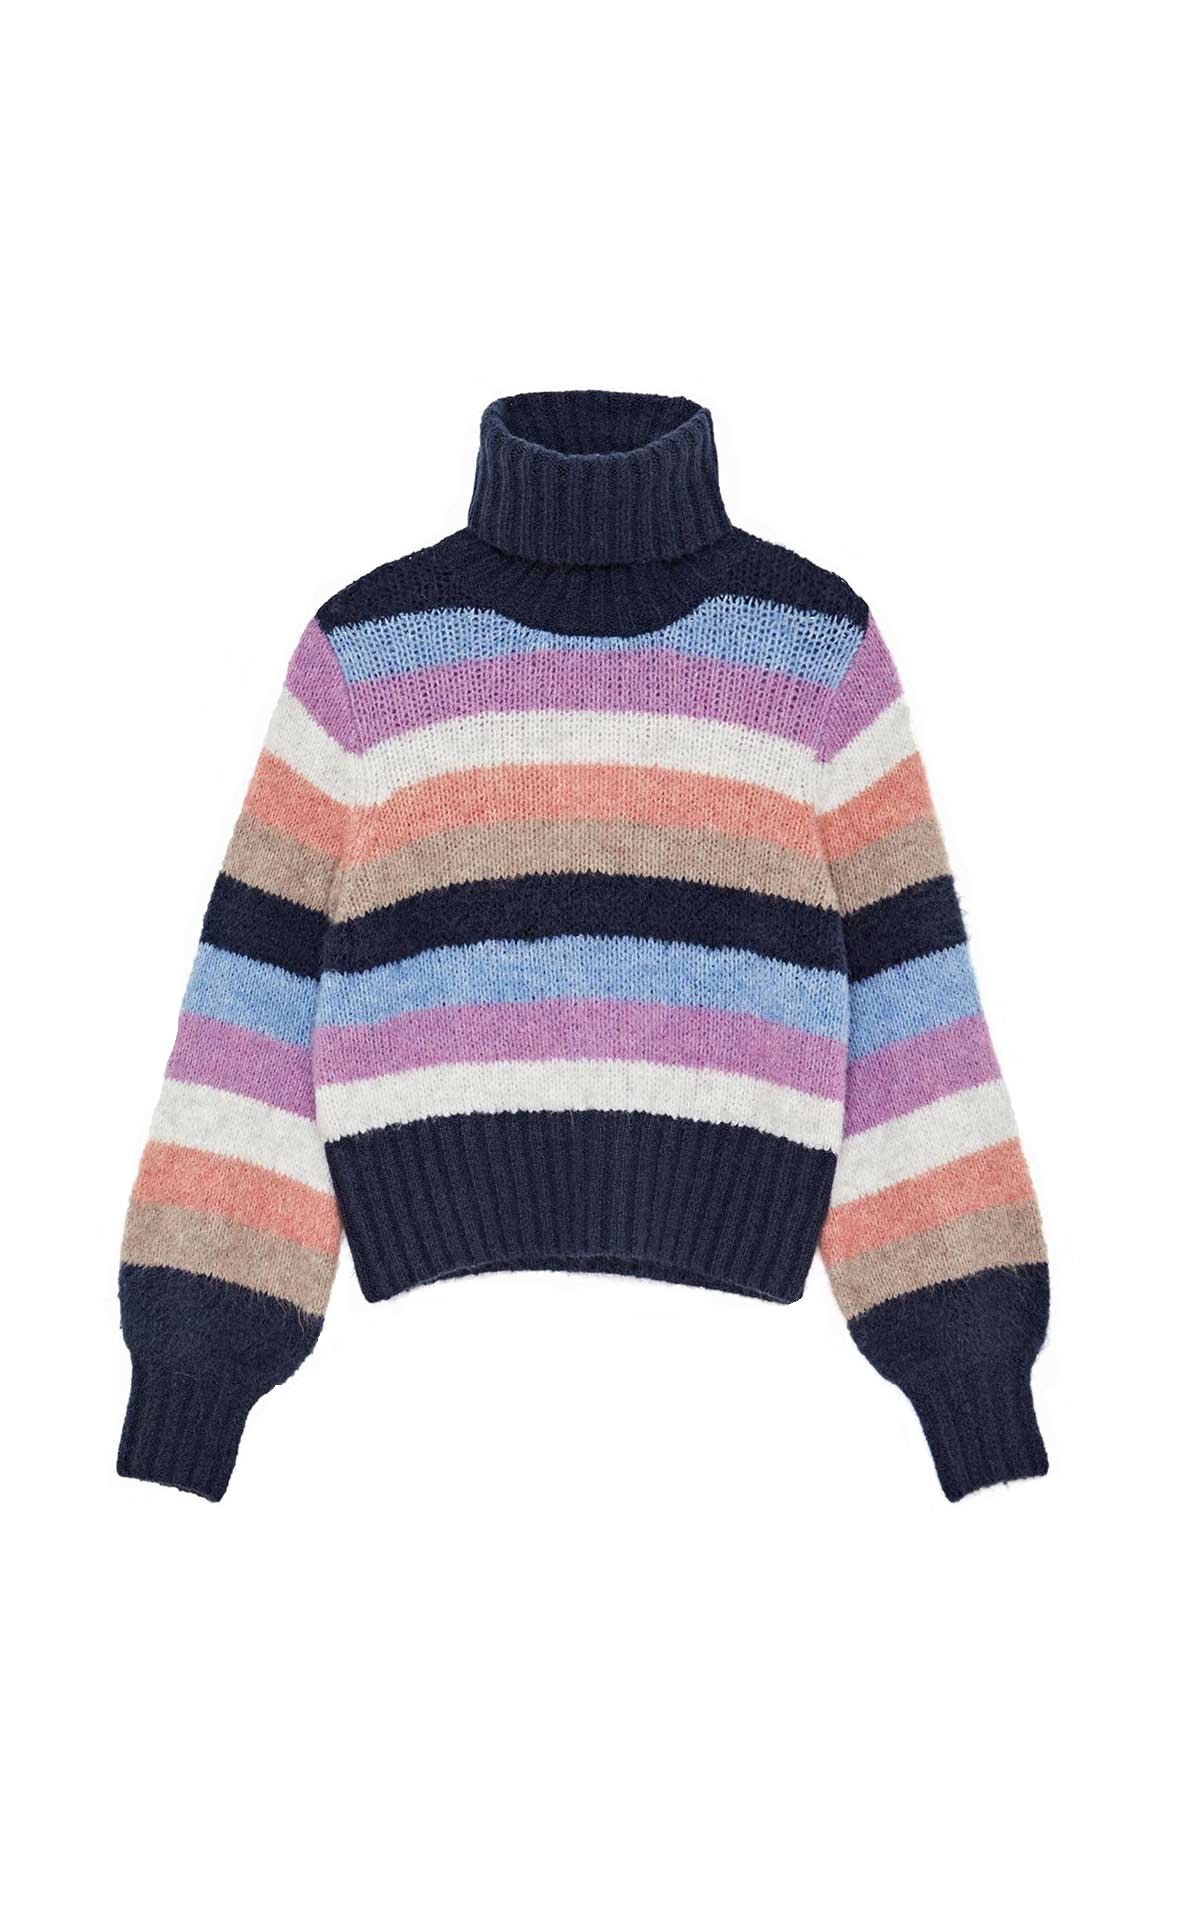 Striped sweater Dua Lipa x Pepe Jeans